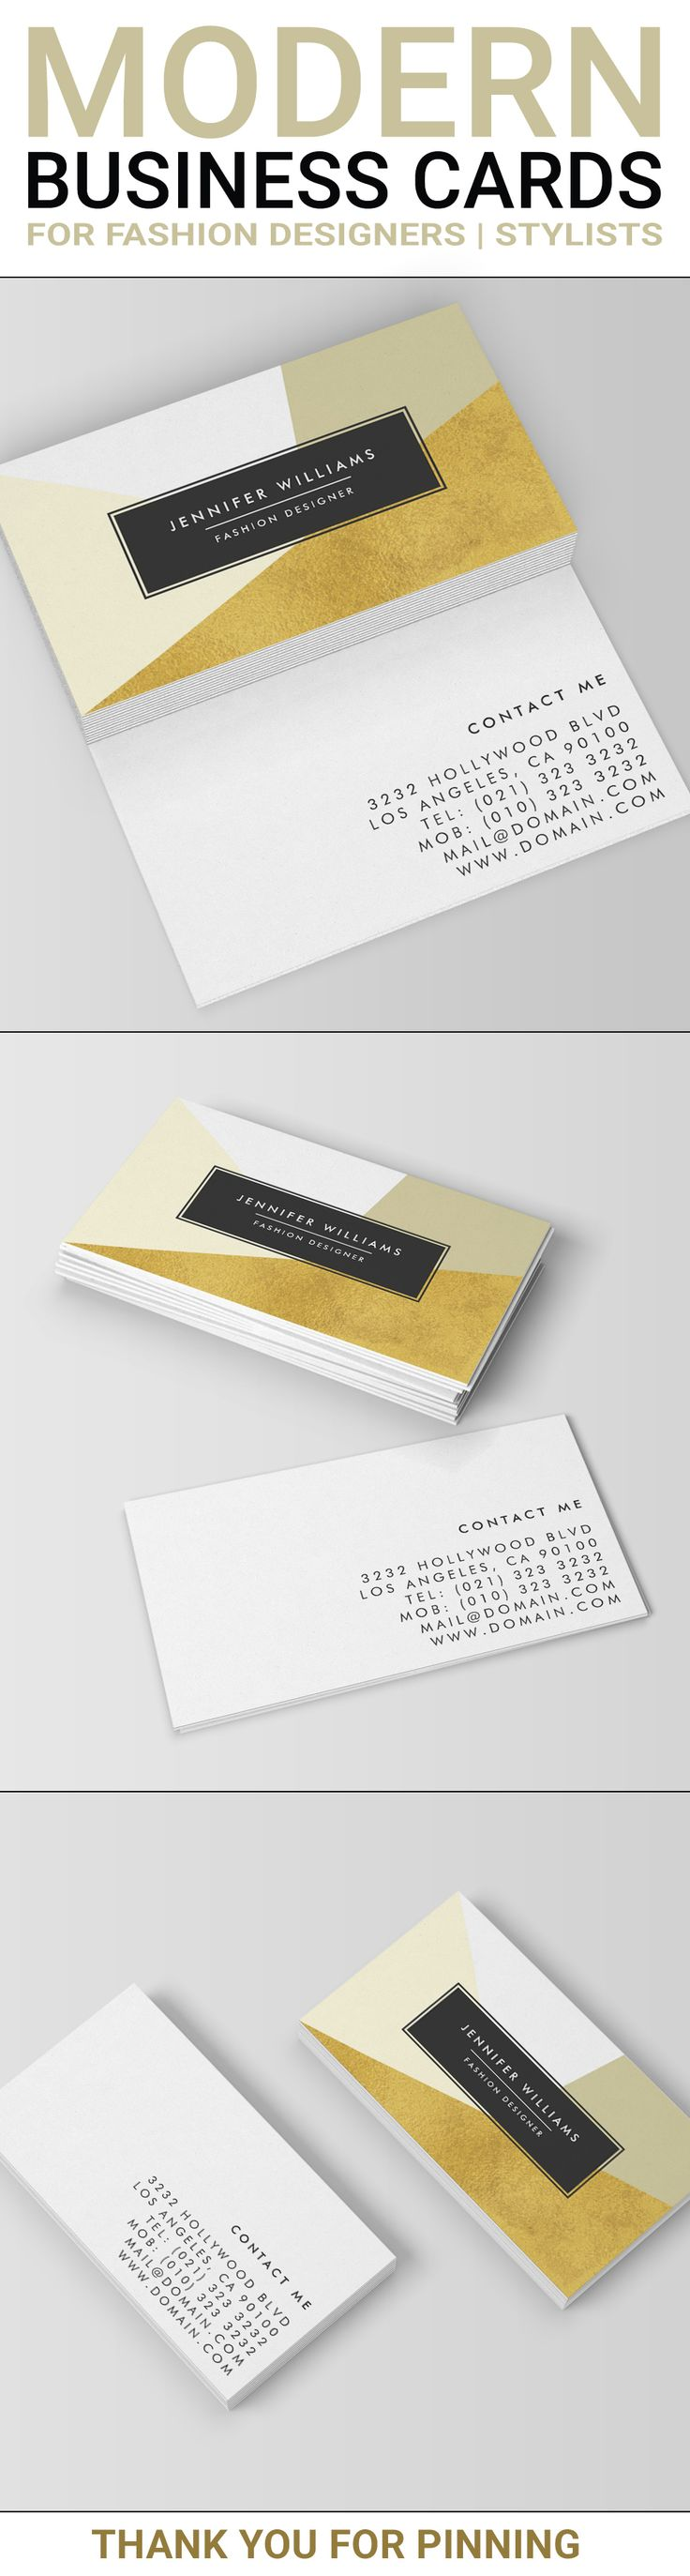 A modern business cards design using geometric shapes with faux gold foil. This elegant business card is ideal for the trendy individual and business alike. Represent yourself or your business with this stylish and chic business card featuring a faux gold design element. This modern and professional design is double sided and features your name and business on the front of the card while all your contact info is presented on the back. Geometric designed business cards created by J32 Design